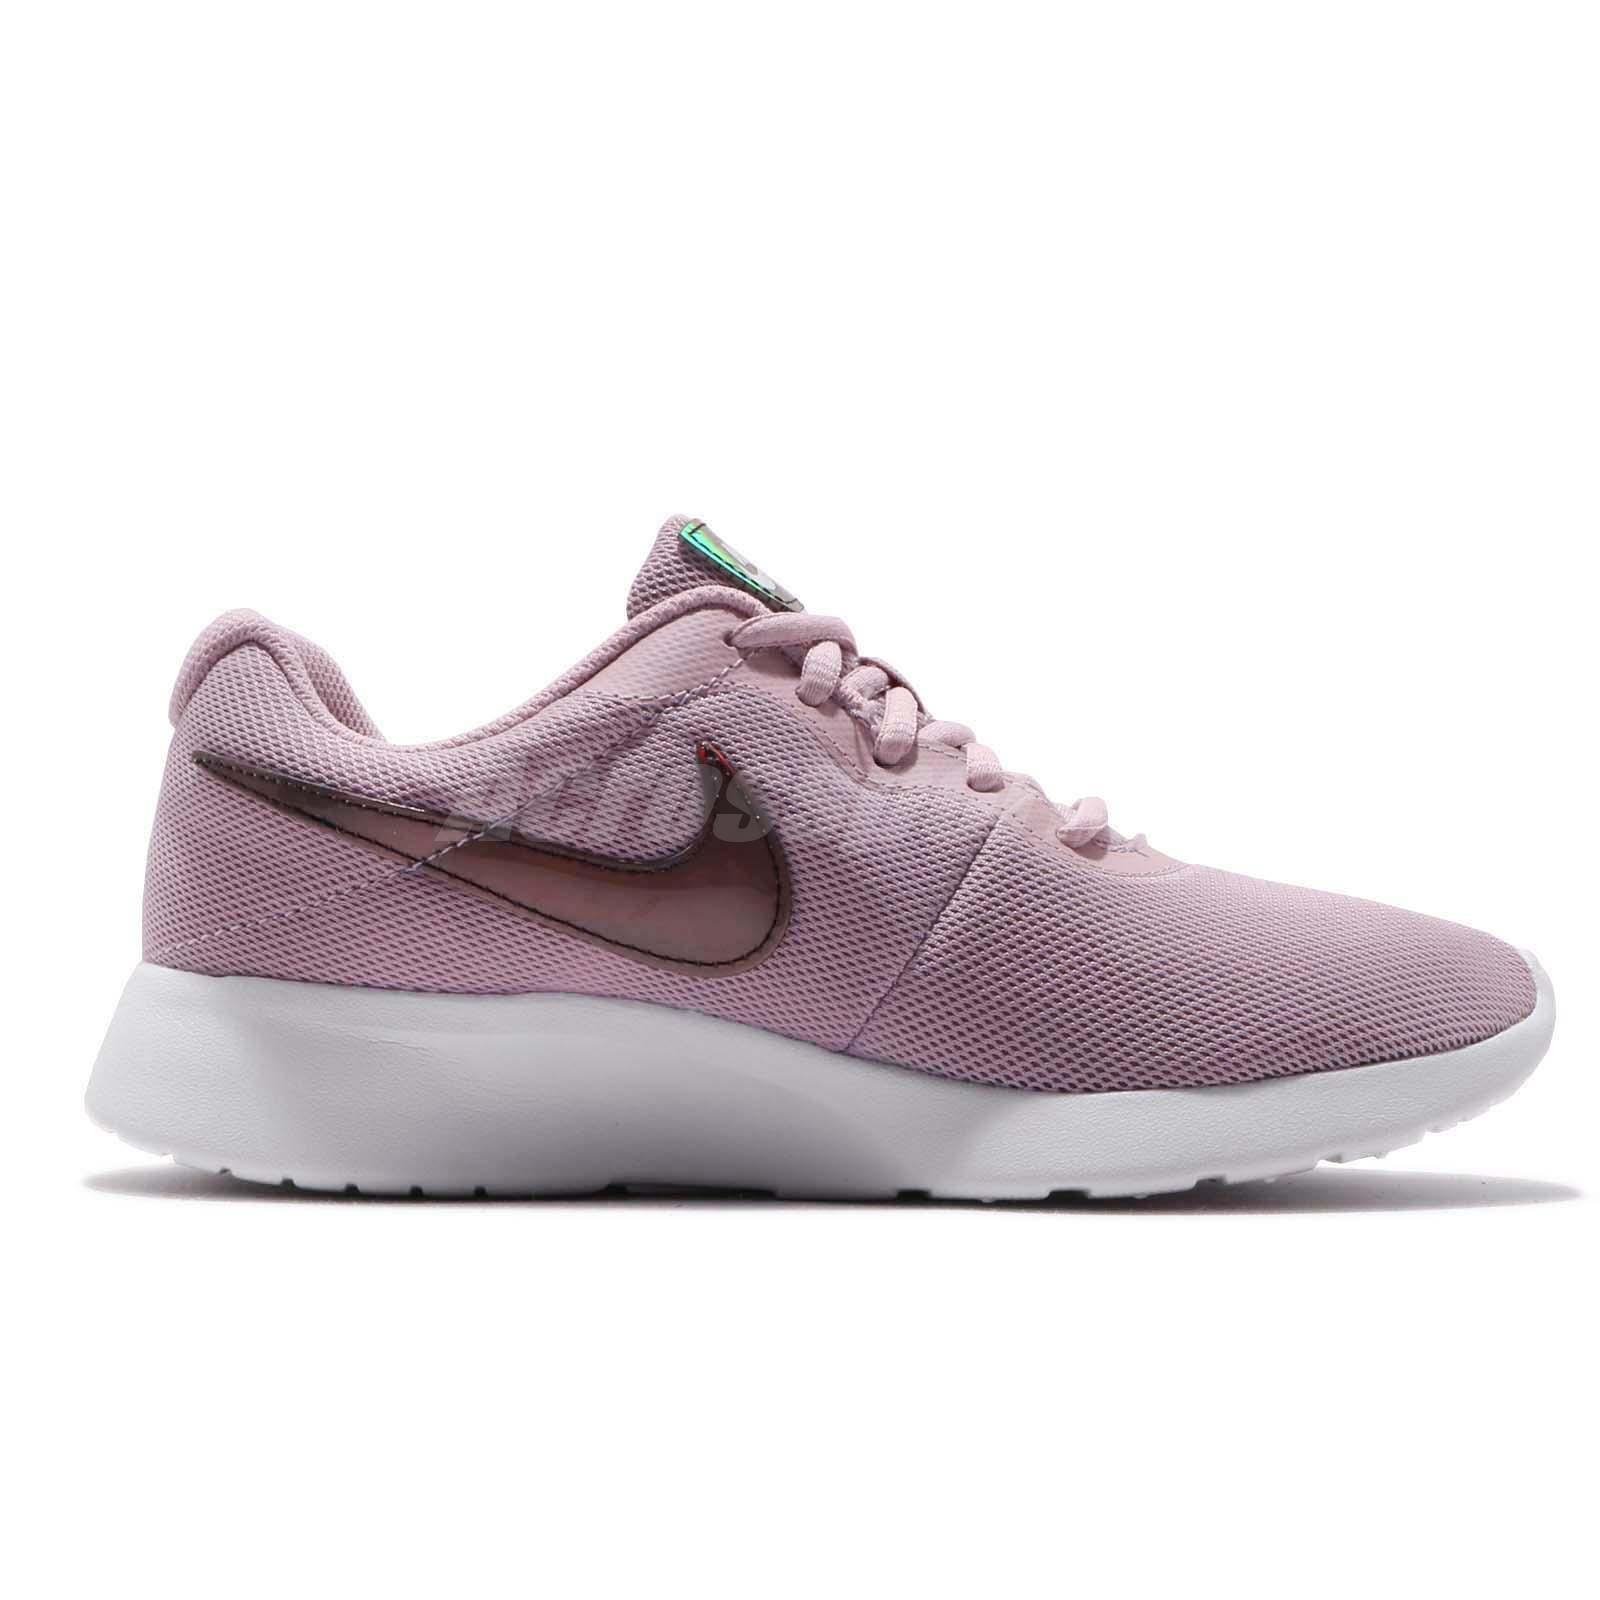 4cbedcff05b Nike Wmns Tanjun Plum Chalk White Women Running Casual Shoes ...